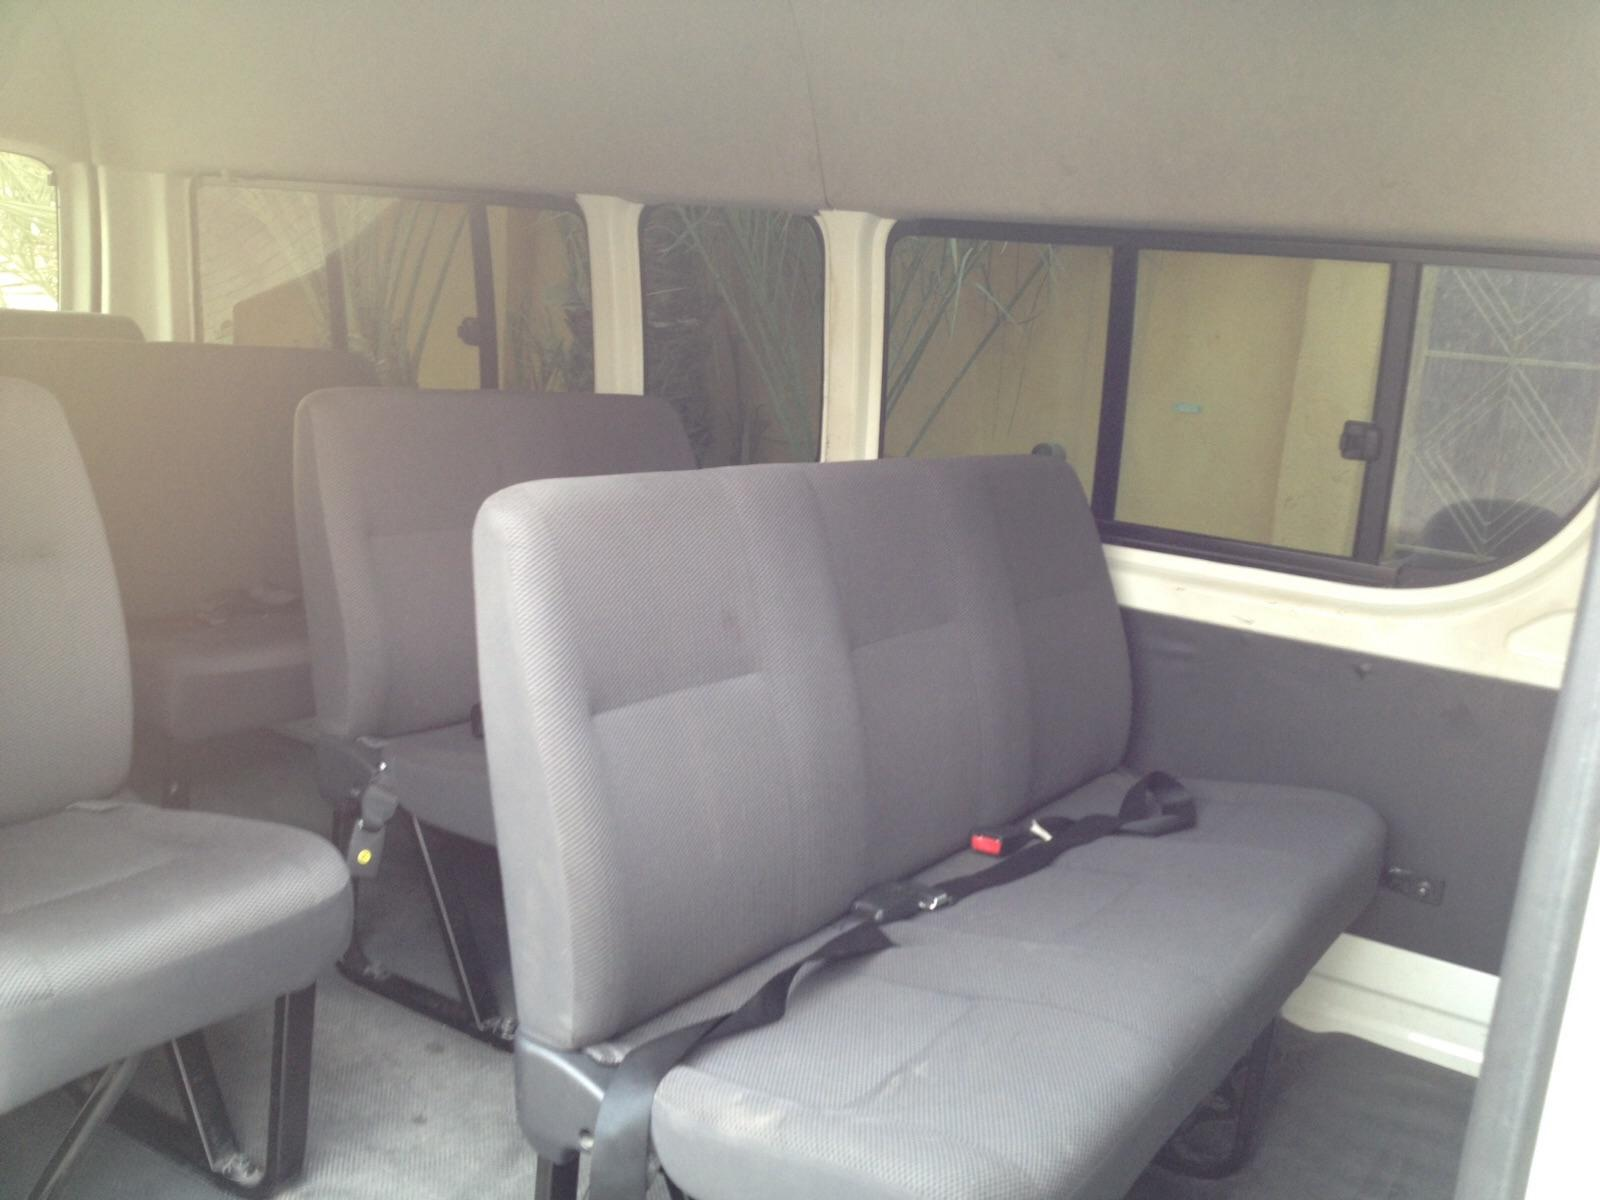 TOYOTA HIACE 15 SEATER VAN FOR SALE